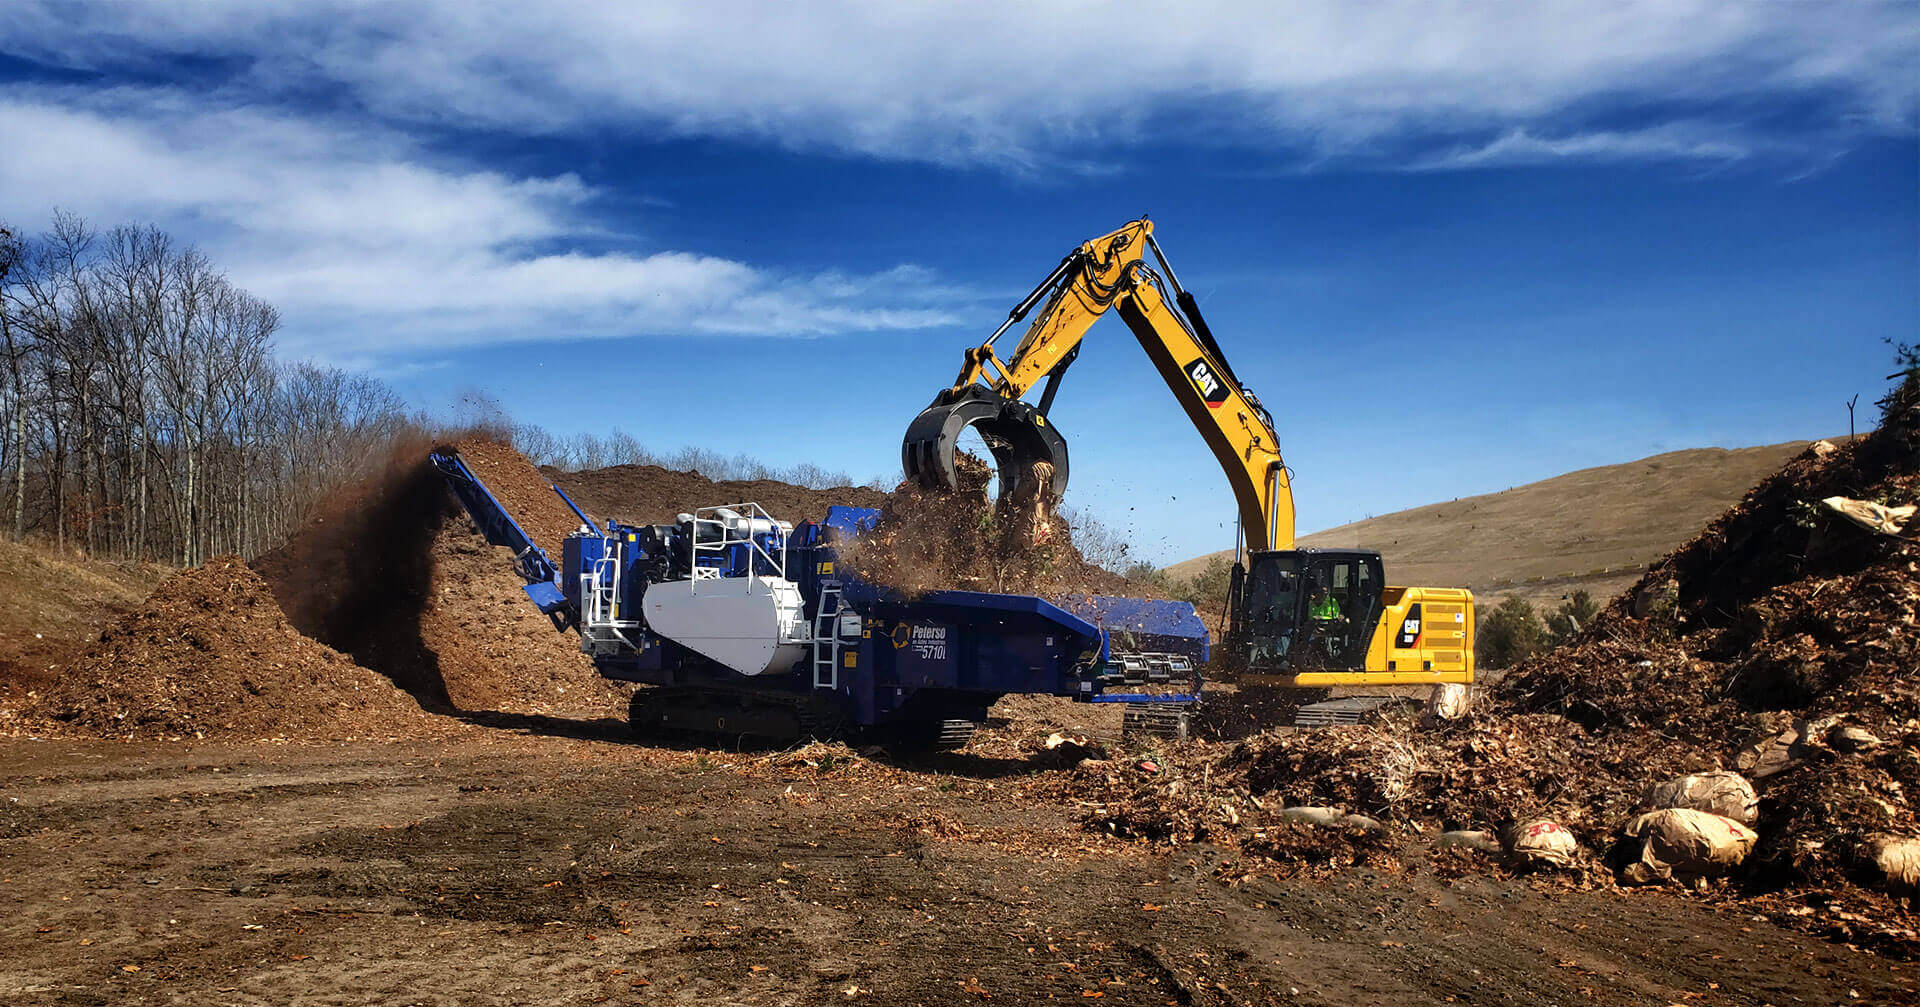 Astec Peterson 5710D Horizontal Grinder making compost from bags of leaves with a excavator loader